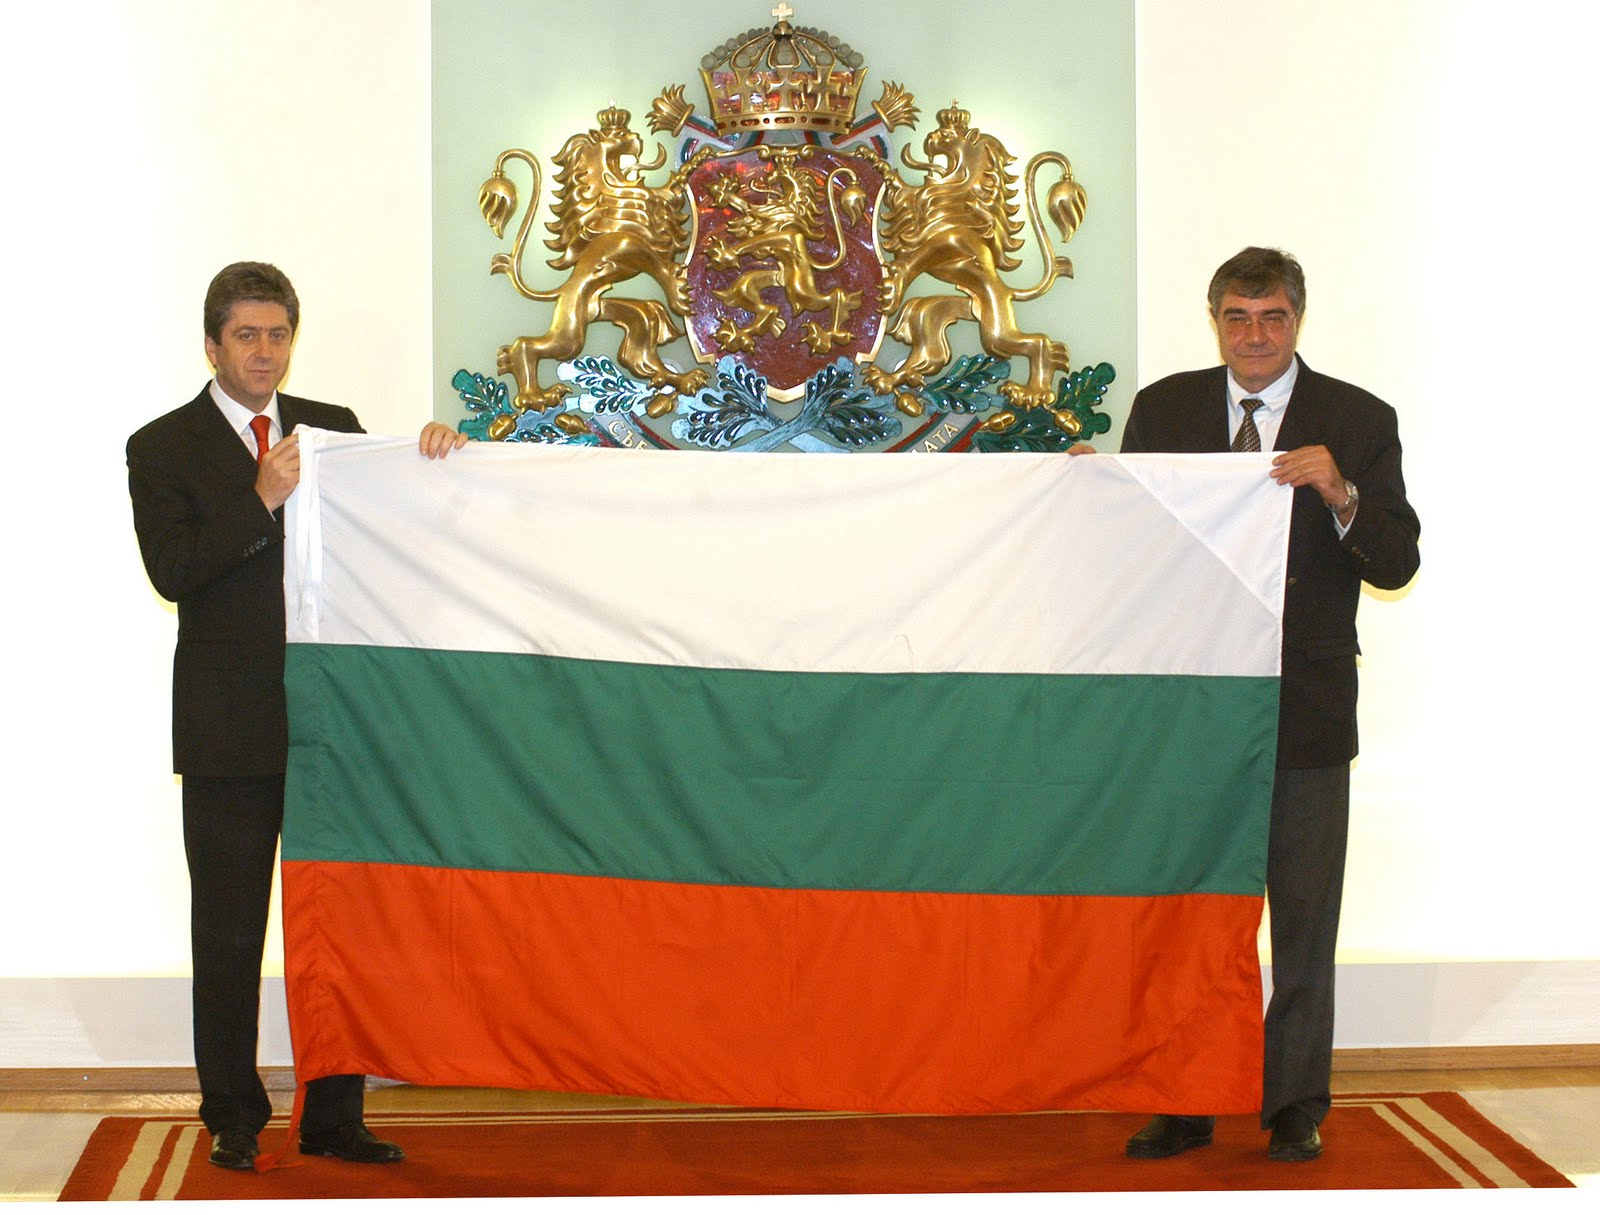 http://4.bp.blogspot.com/-IYpQPMs7q70/TcnTUNam1OI/AAAAAAAAAy8/svC_dH-QMgA/s1600/Wallpapers+Flag+of+Bulgaria+%25281%2529.jpg